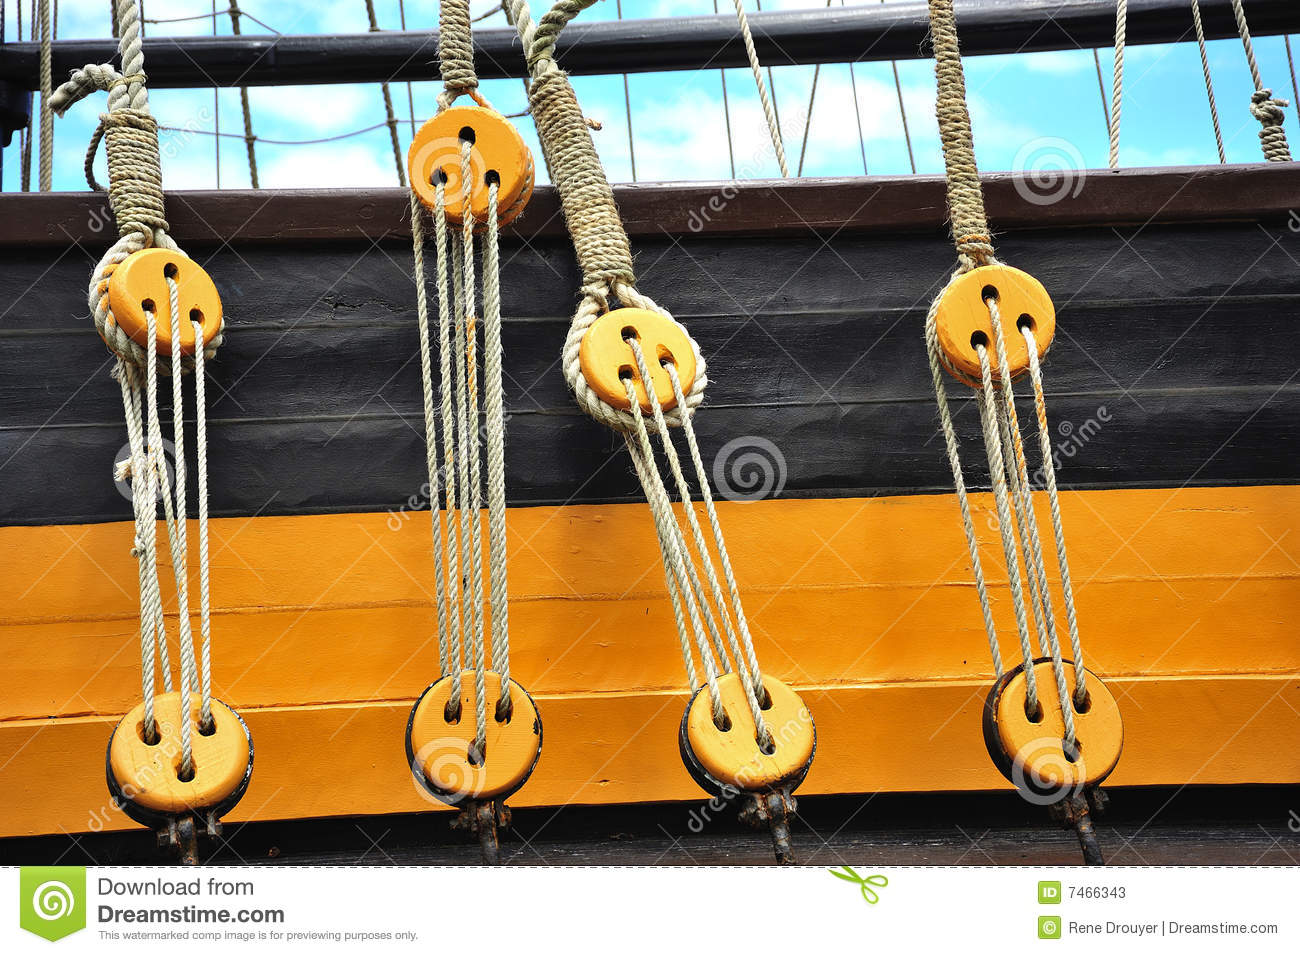 Pulleys of a boat